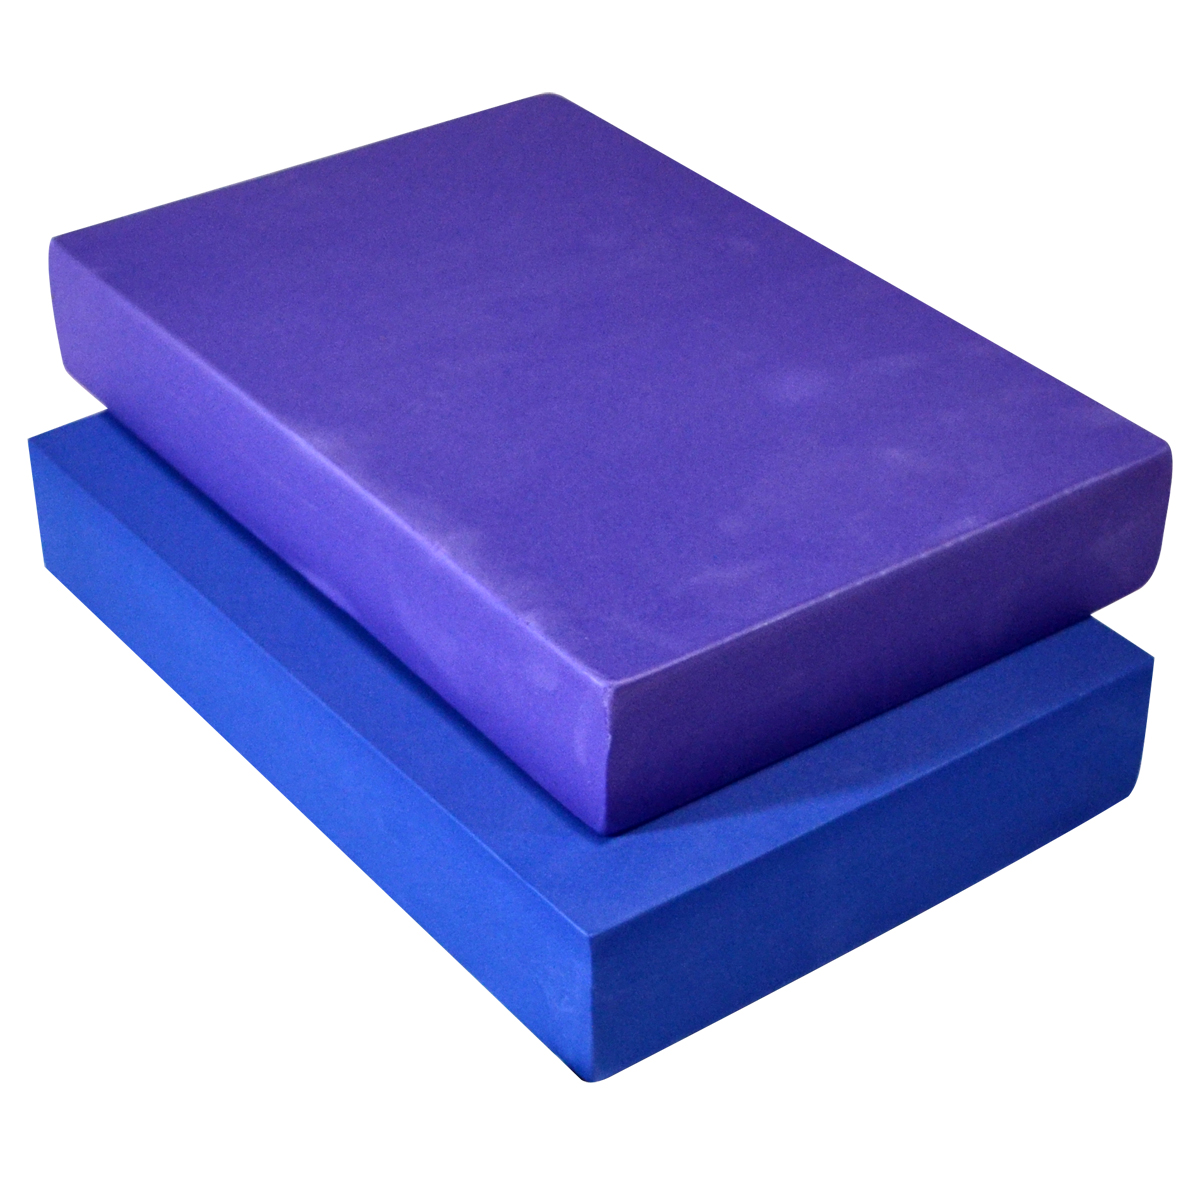 2 Foam Yoga Block Yoga Accessories